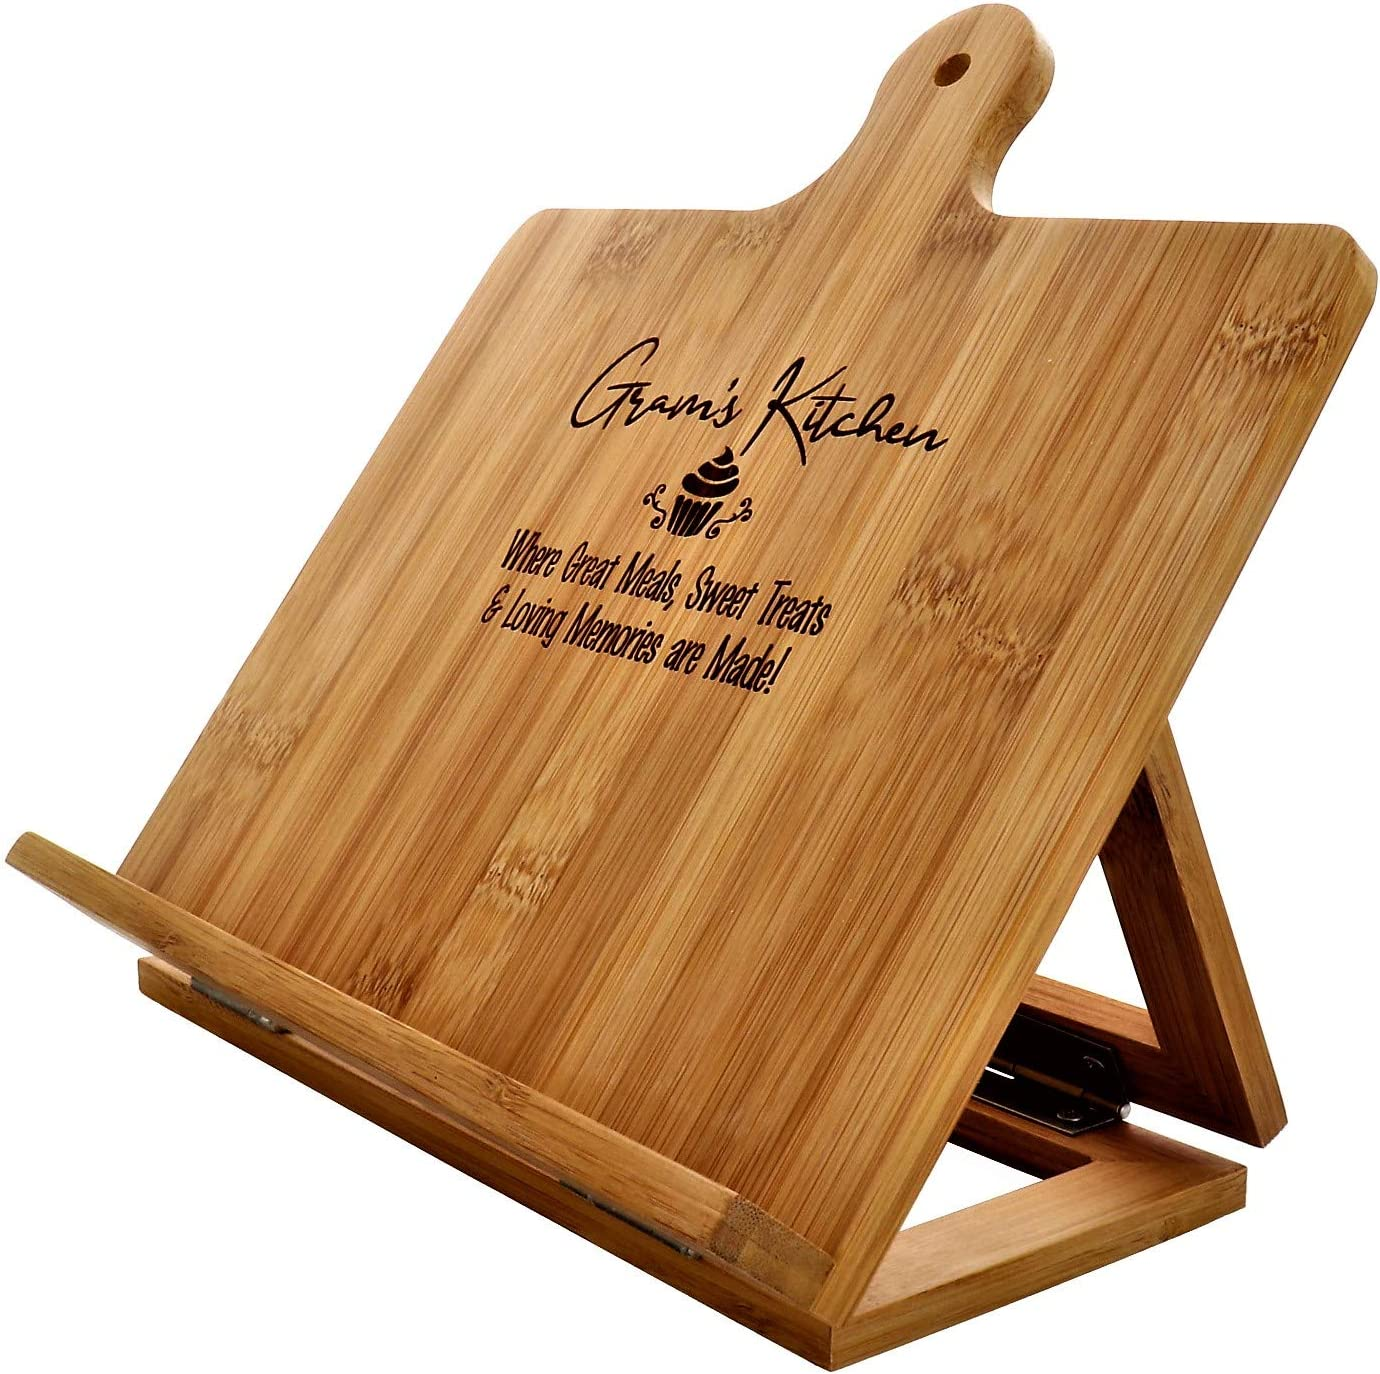 Gram/'s Recipe Cookbook Holder Stand Gift 10.25x10.25 Custom Engraved Bamboo Cutting Board Foldable Chef Easel Metal Hinges Kickstand iPad Tablet Compatible Christmas Birthday Kitchen Decor Design